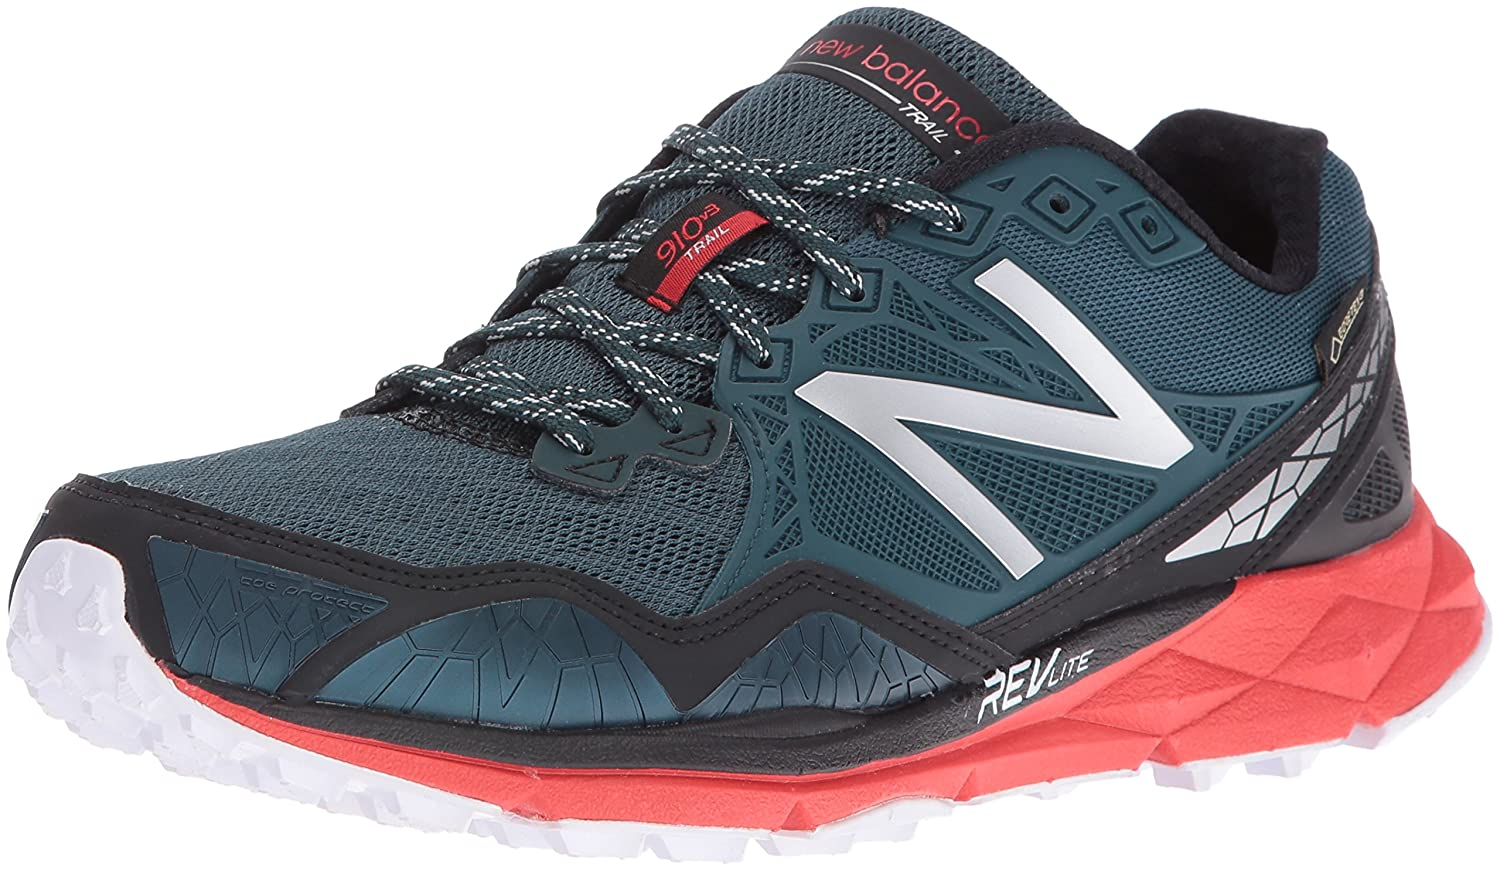 New Balance Mt910og3-910, Zapatillas de Running para Hombre 46 4E EU|Trek/Red